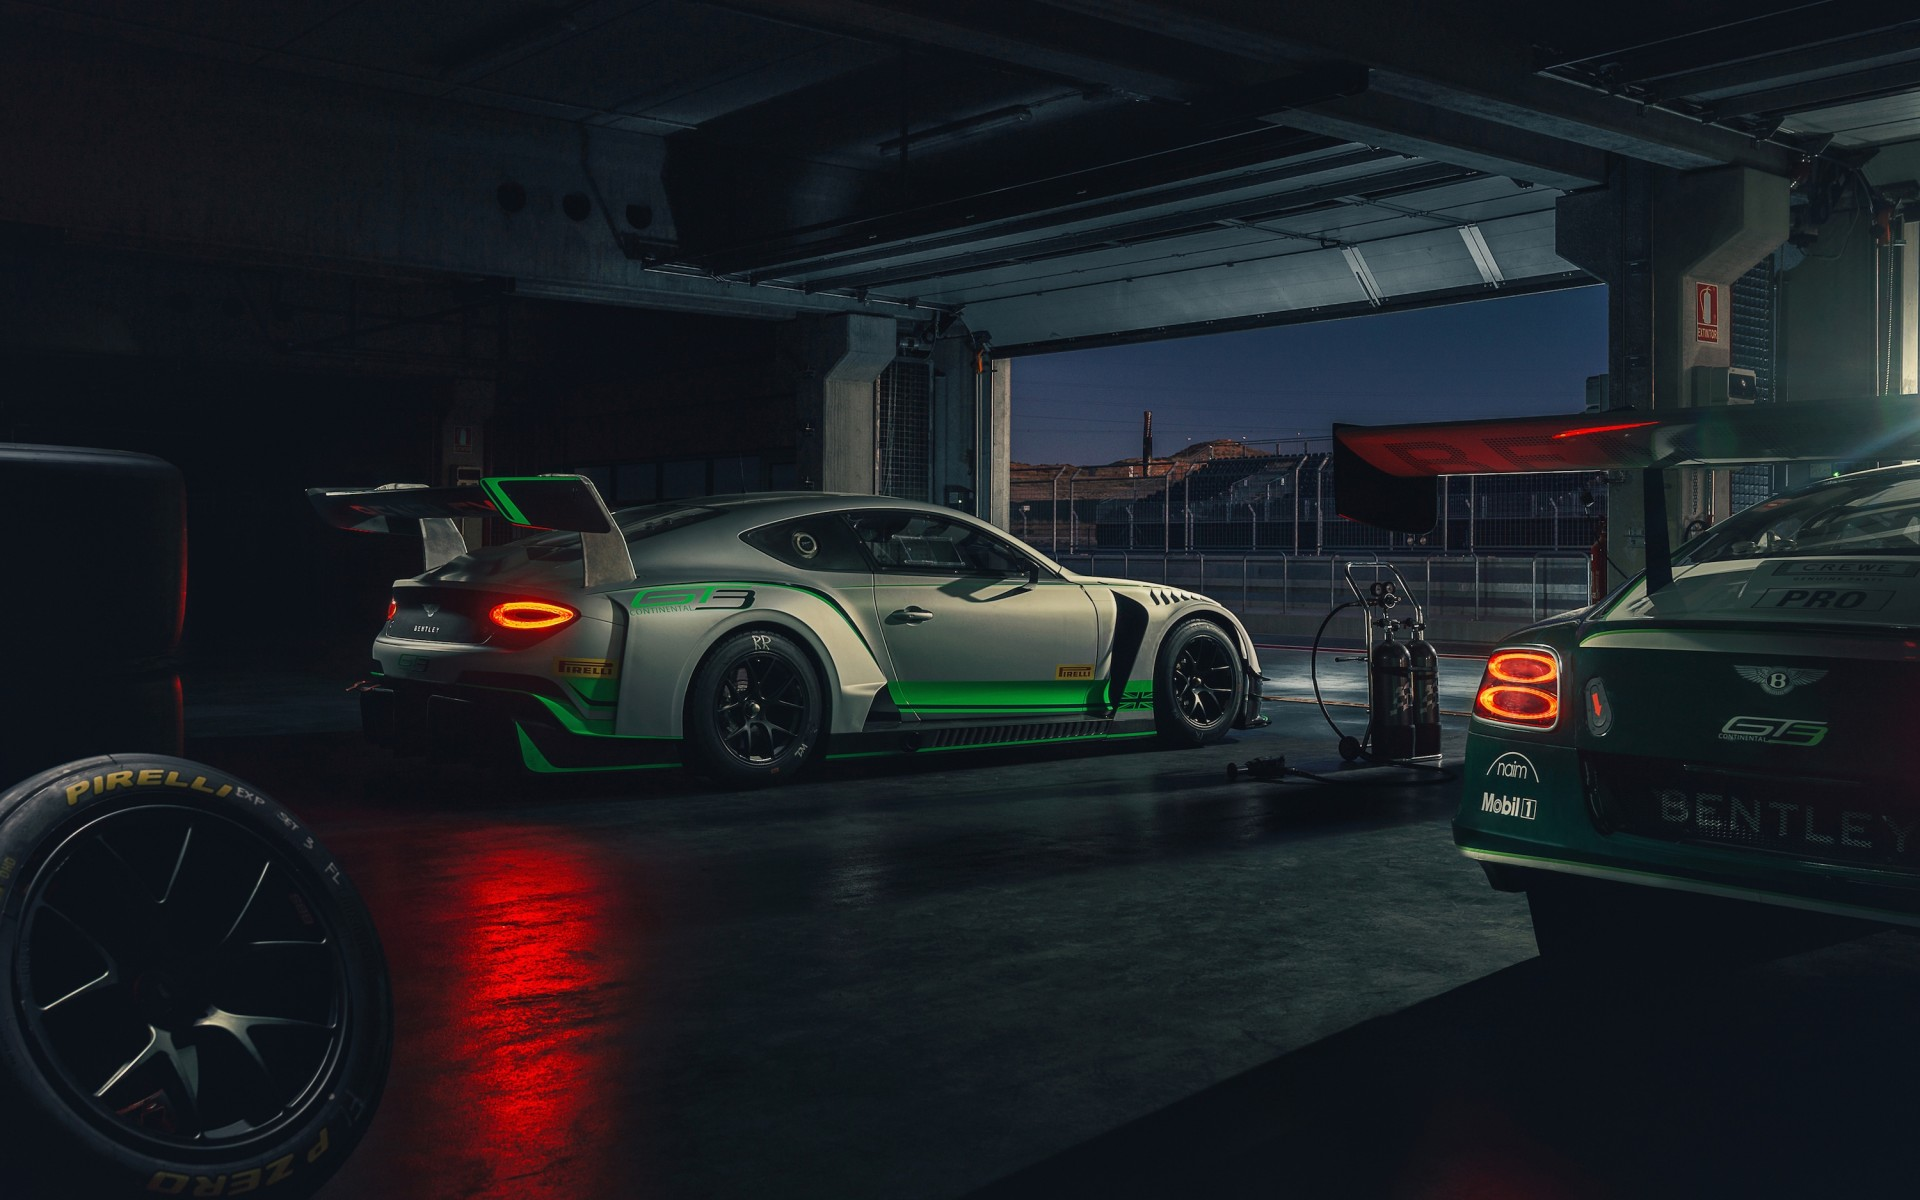 Download 1920x1200 Bentley Continental Gt3, Racing, Cars, Garage